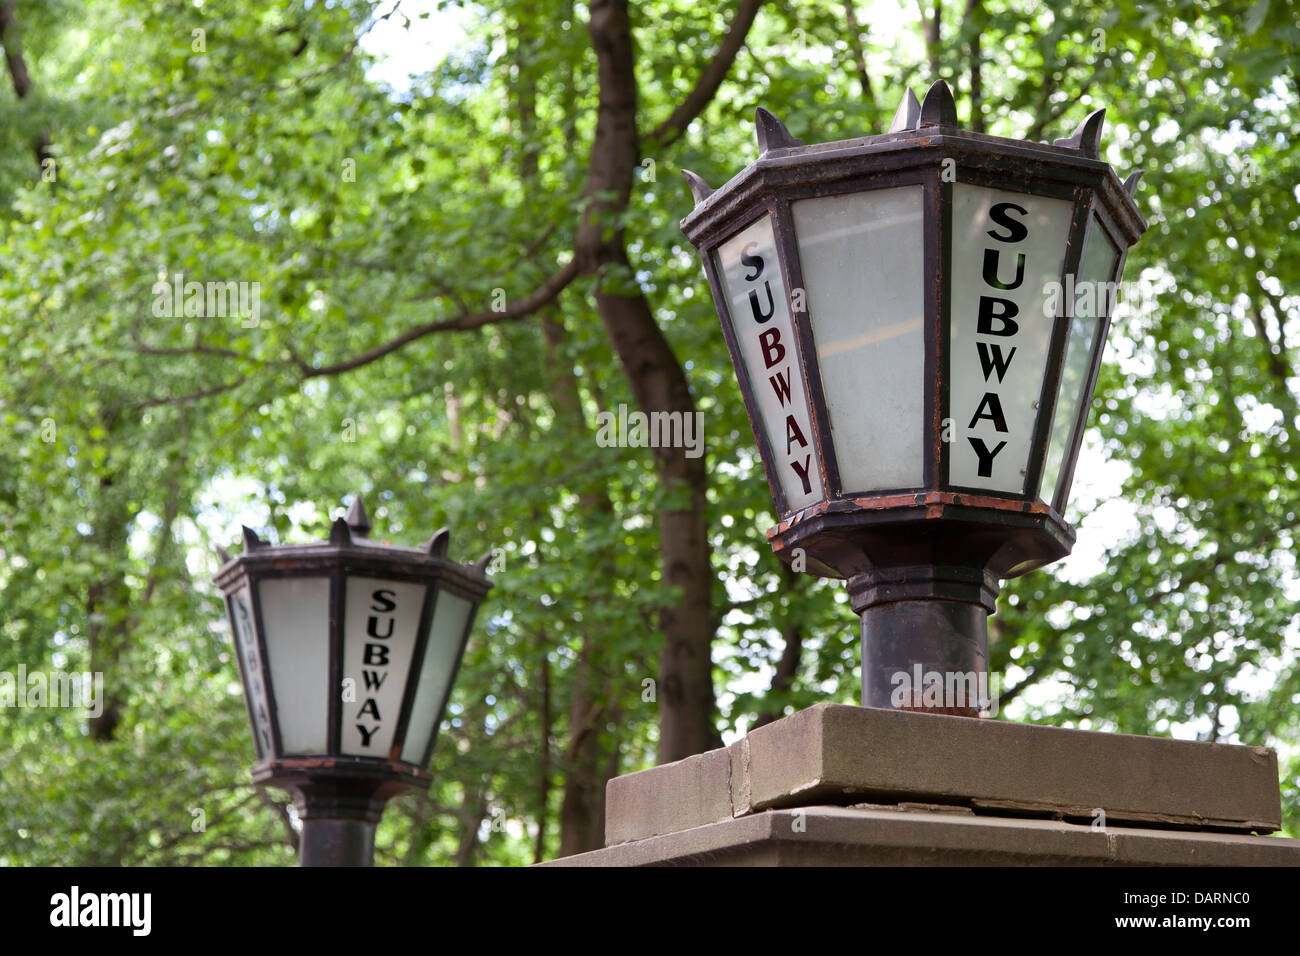 Subway signs at the entrance at Central Park in New York City - Stock Image